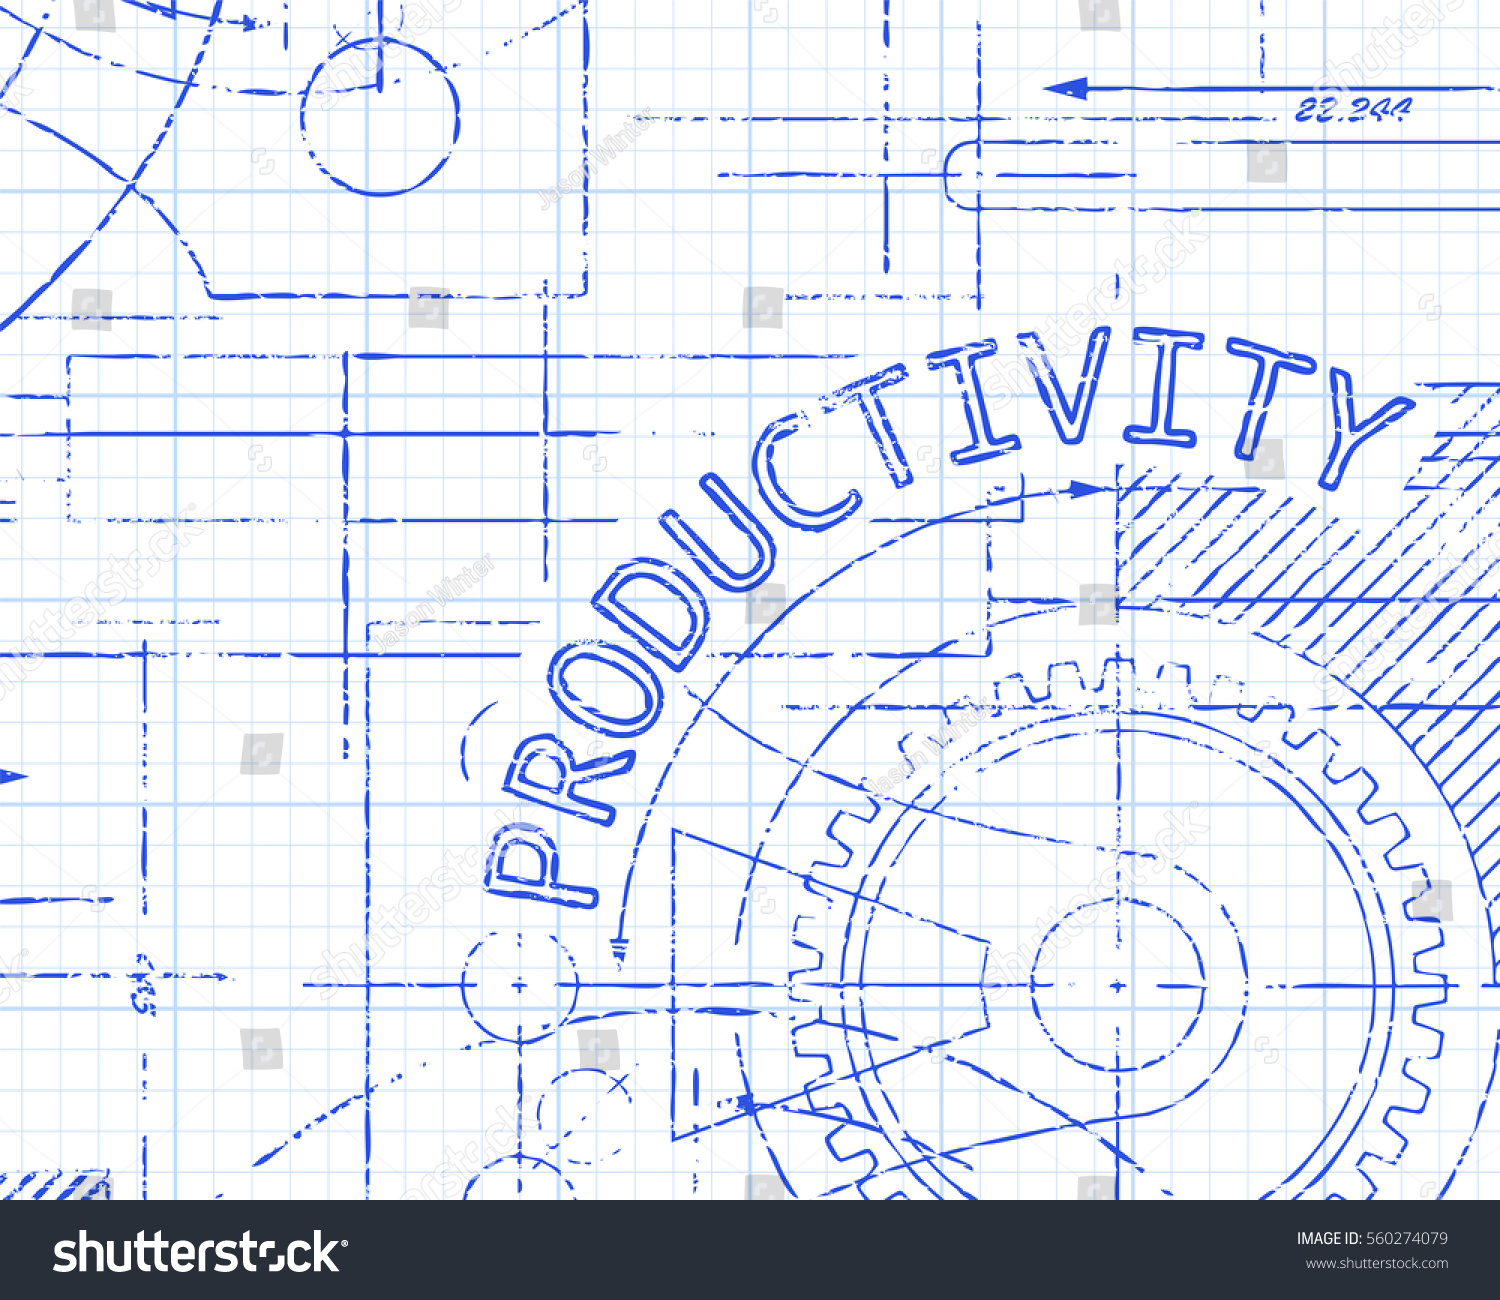 Productivity word on graph paper machine stock vector hd royalty productivity word on graph paper machine background illustration ccuart